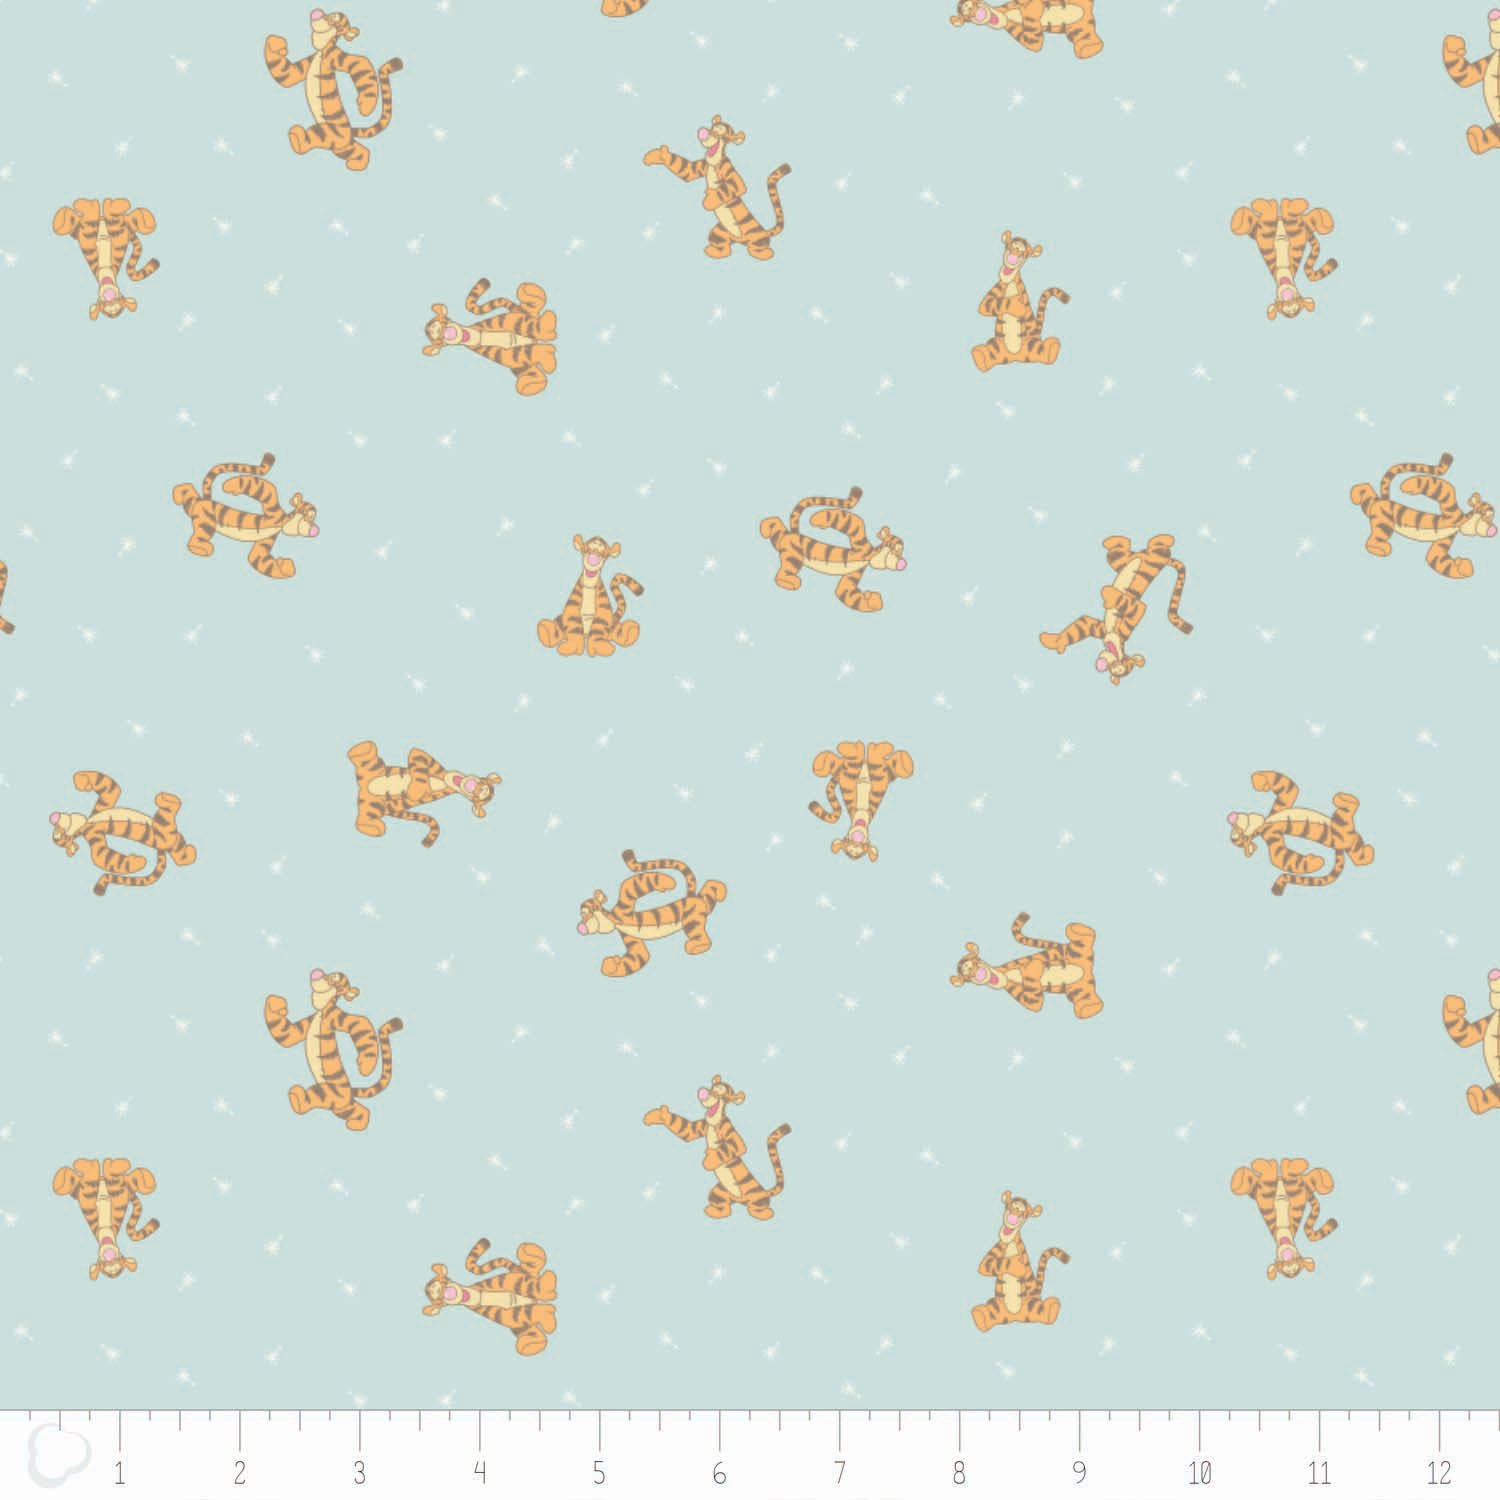 Winnie the Pooh Collection by Camelot Designs - Disney - Tigger in Light Blue